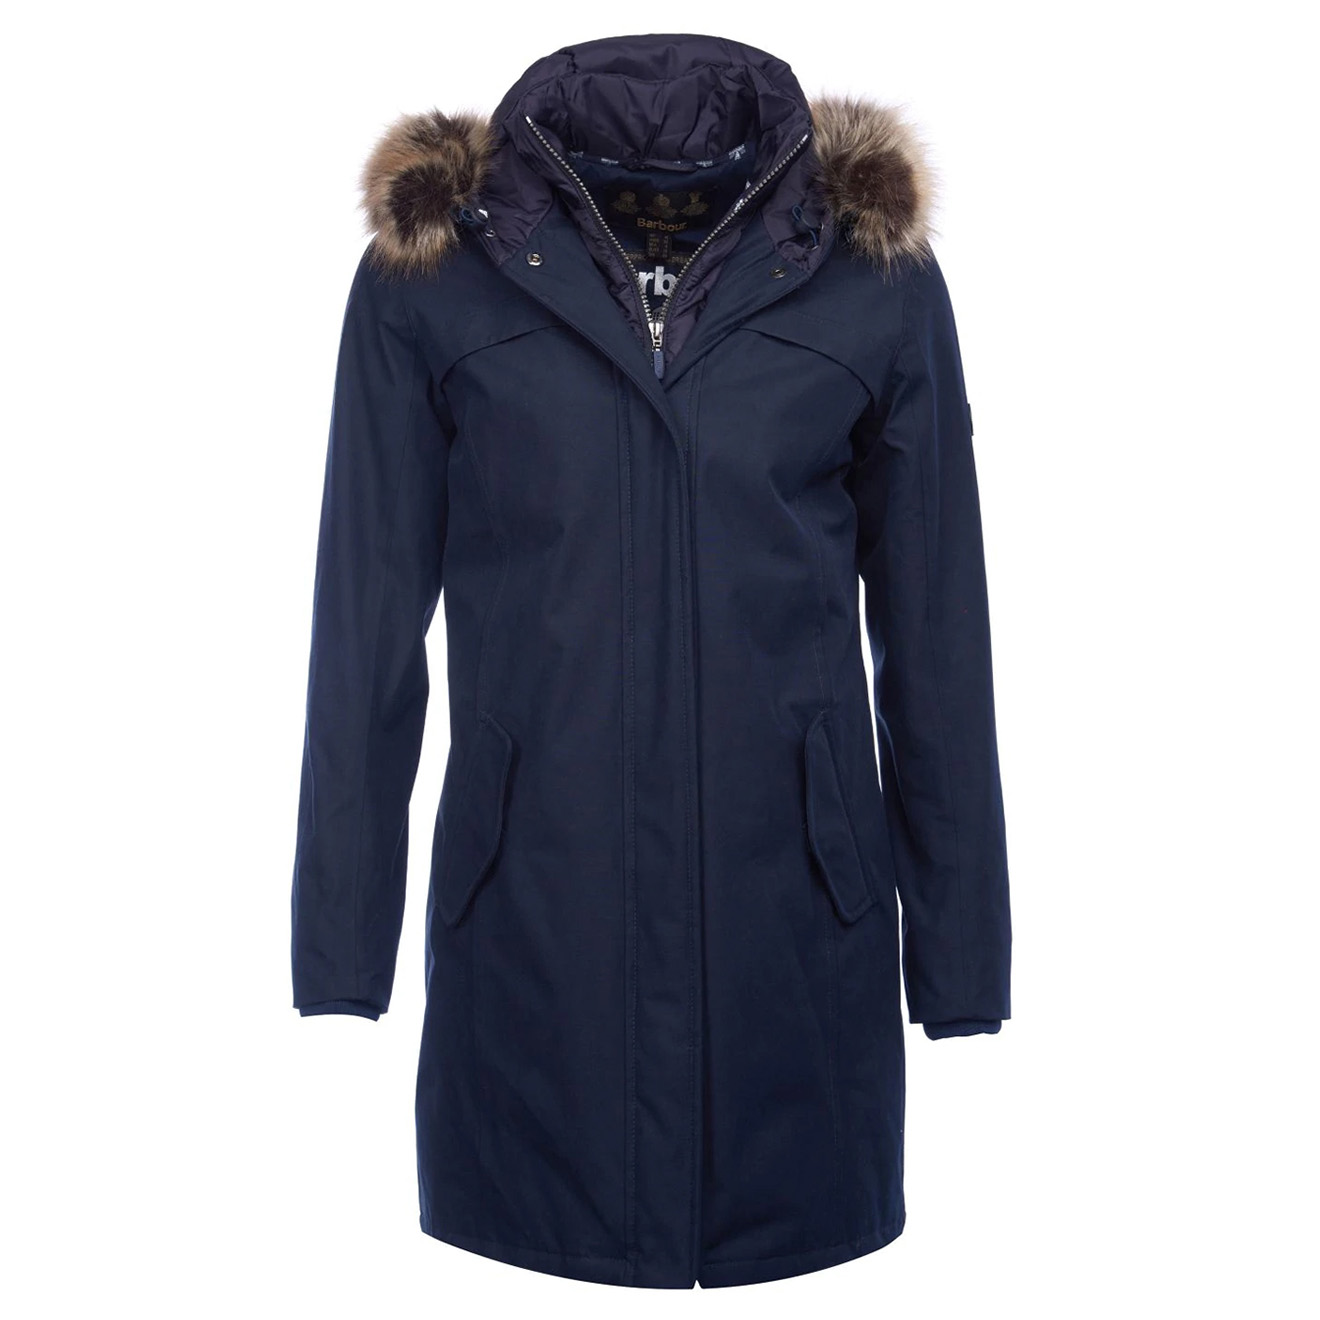 Barbour Womens Coldhurst Jacket Navy The Sporting Lodge